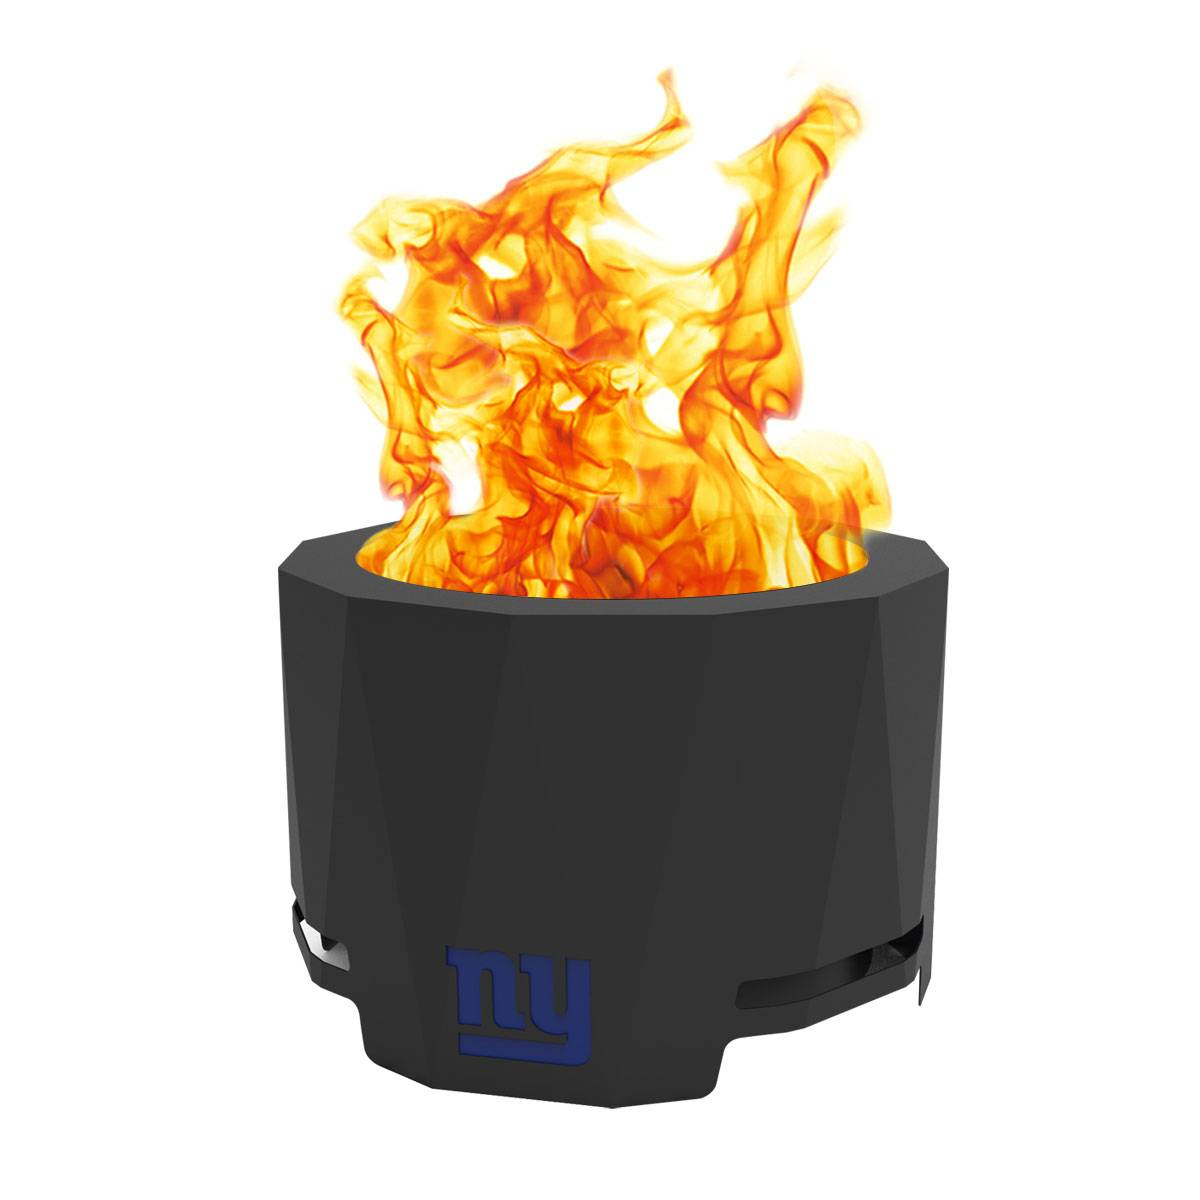 New York Giants The Peak Patio Fire Pit on The Peak Patio Fire Pit id=51997